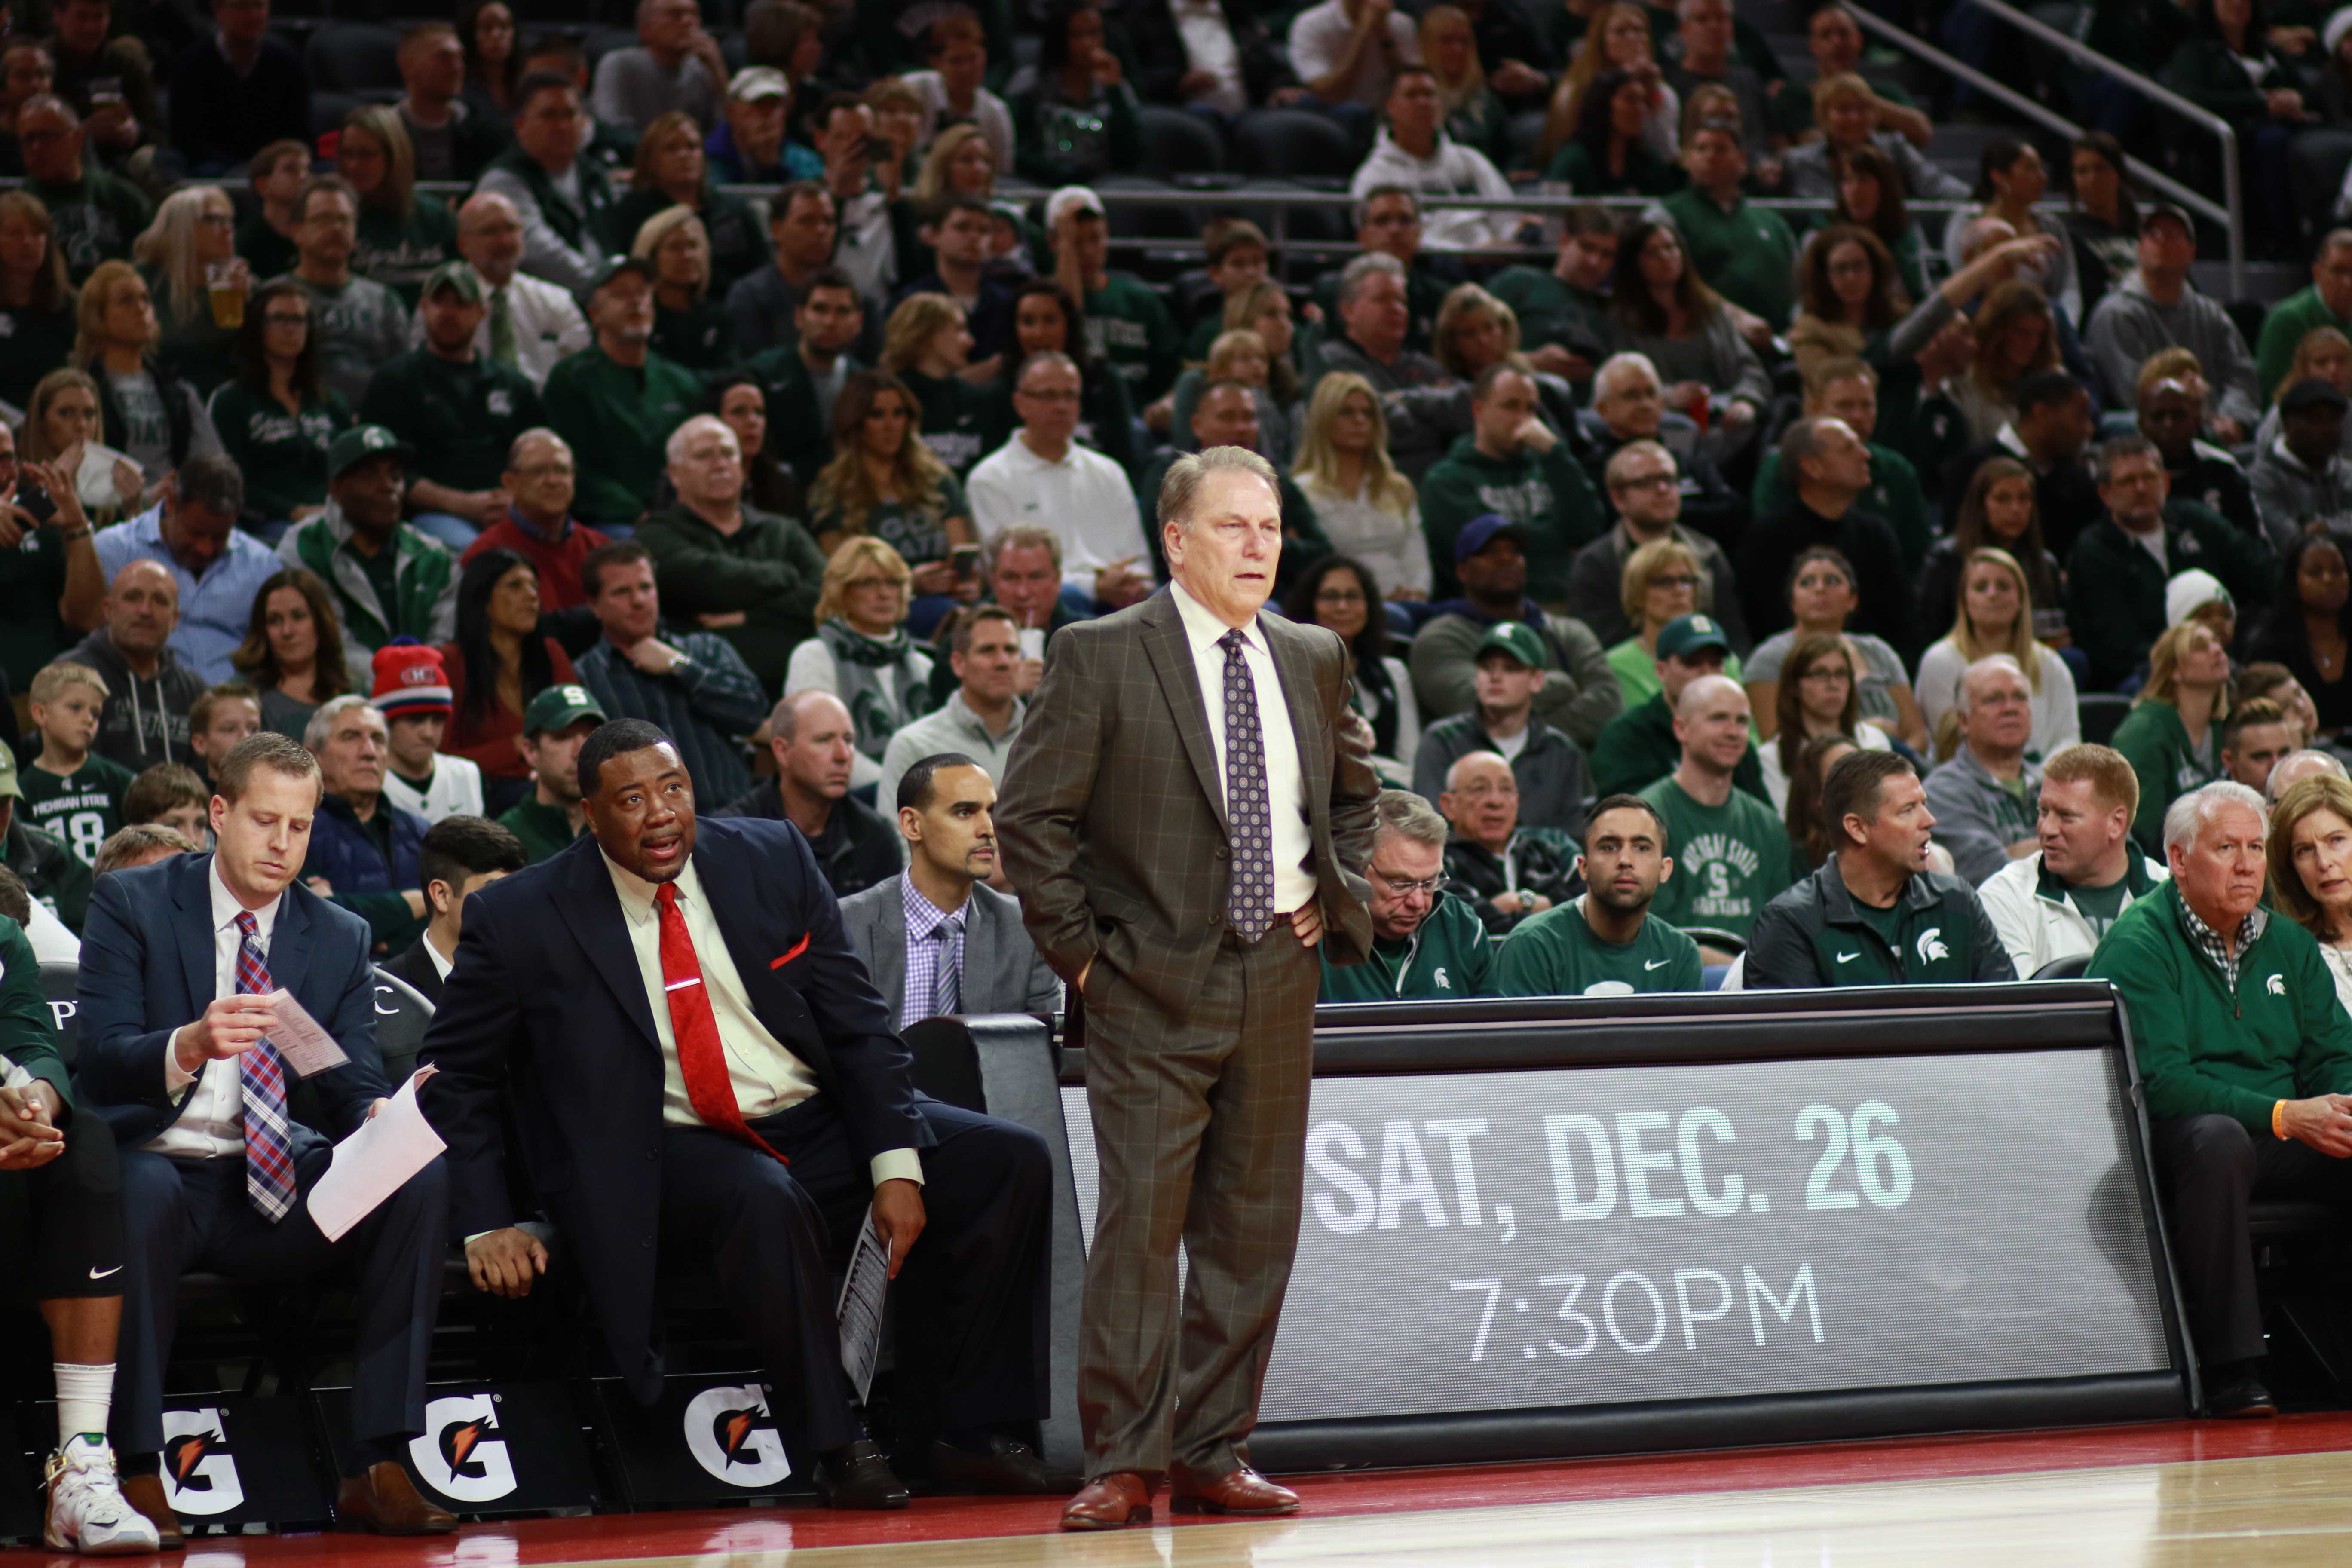 MSU Bounces Back Against Oakland Behind Ward's 25 Points